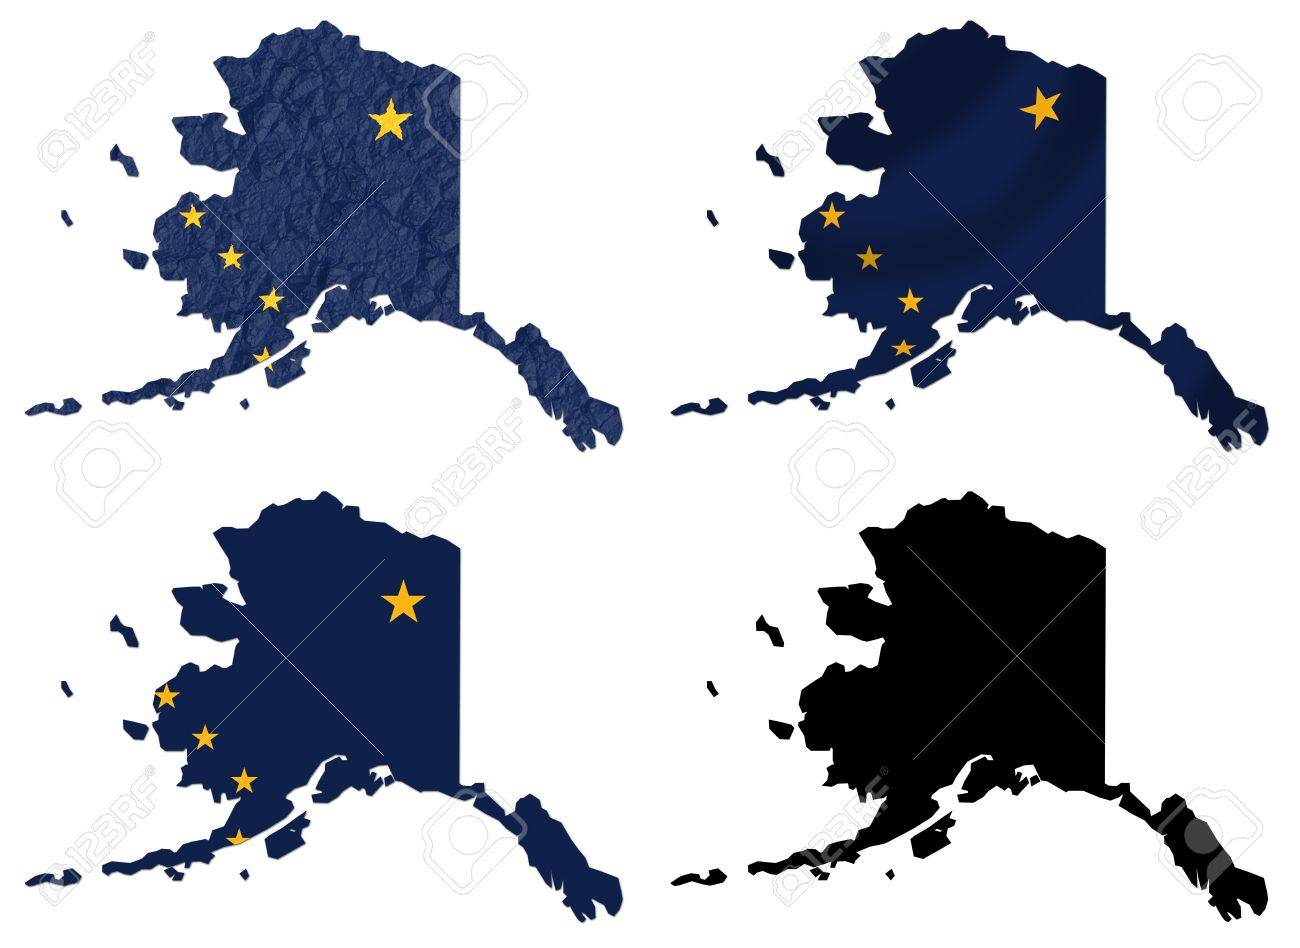 US Alaska State Flag Over Map Collage Stock Photo Picture And - Us map collage